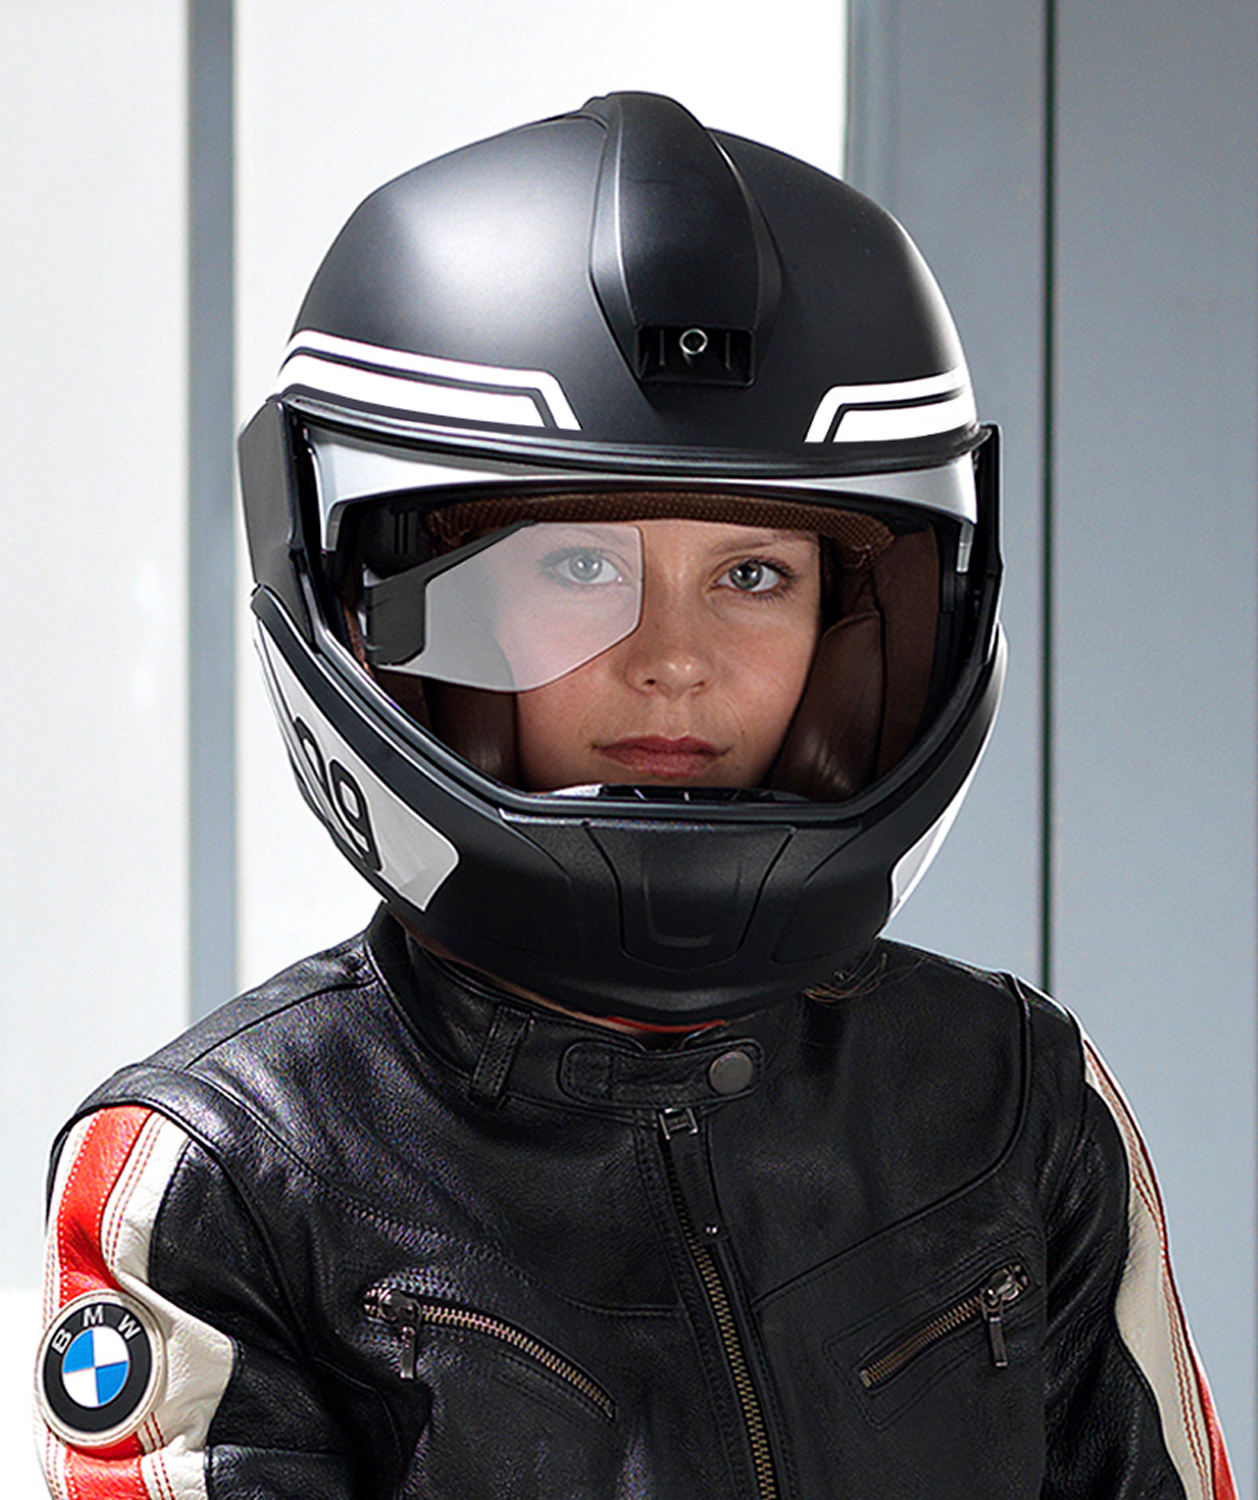 BMW Motorrad presents concepts for motorcycle laser light and he